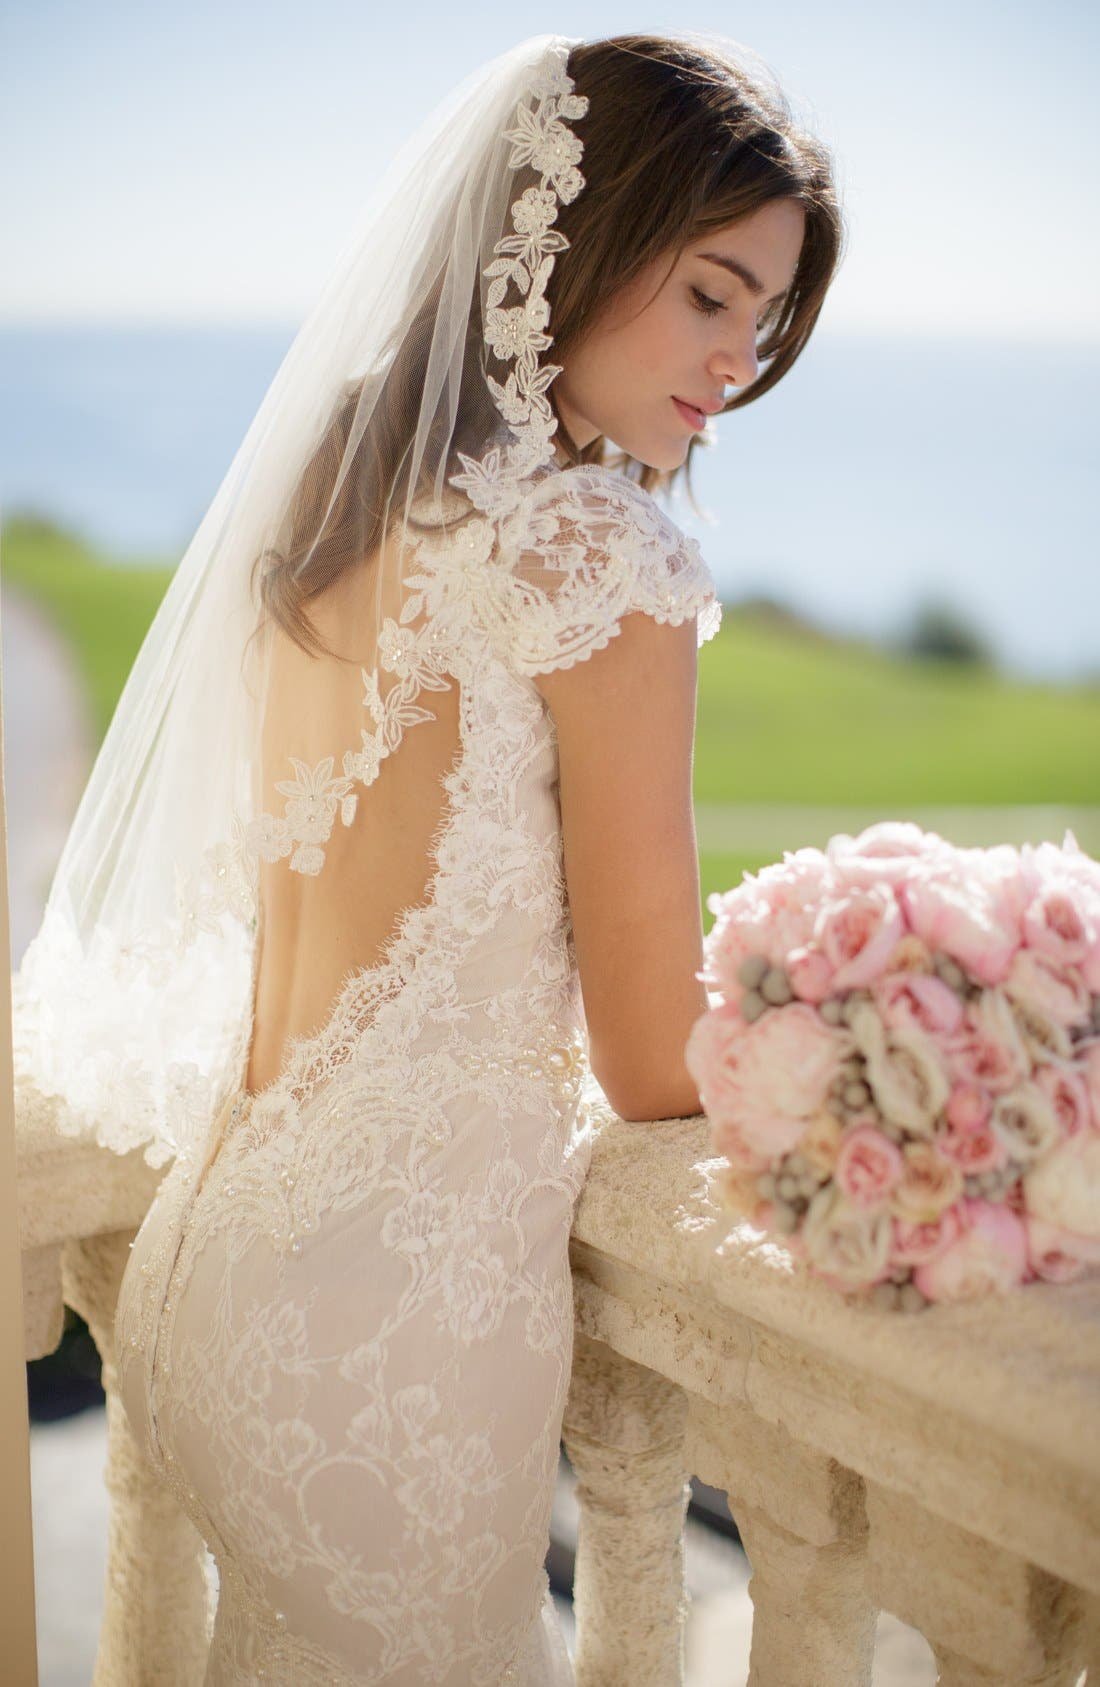 'Angelina' Lace Trim Tulle Veil,                             Alternate thumbnail 4, color,                             IVORY